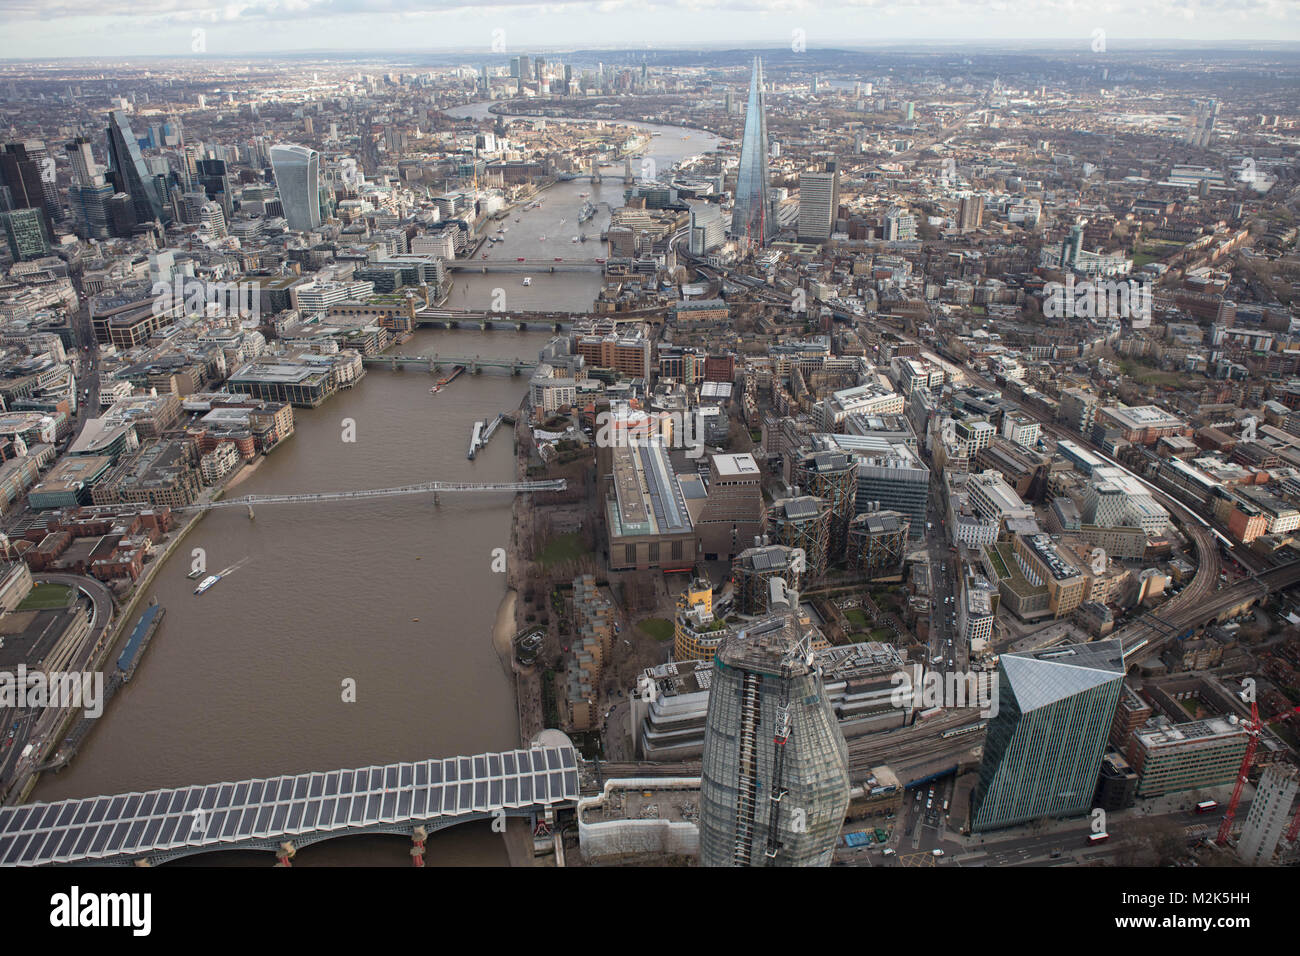 An aerial view of London looking East down the River Thames from Blackfriars Bridge with Canary Wharf visible in - Stock Image